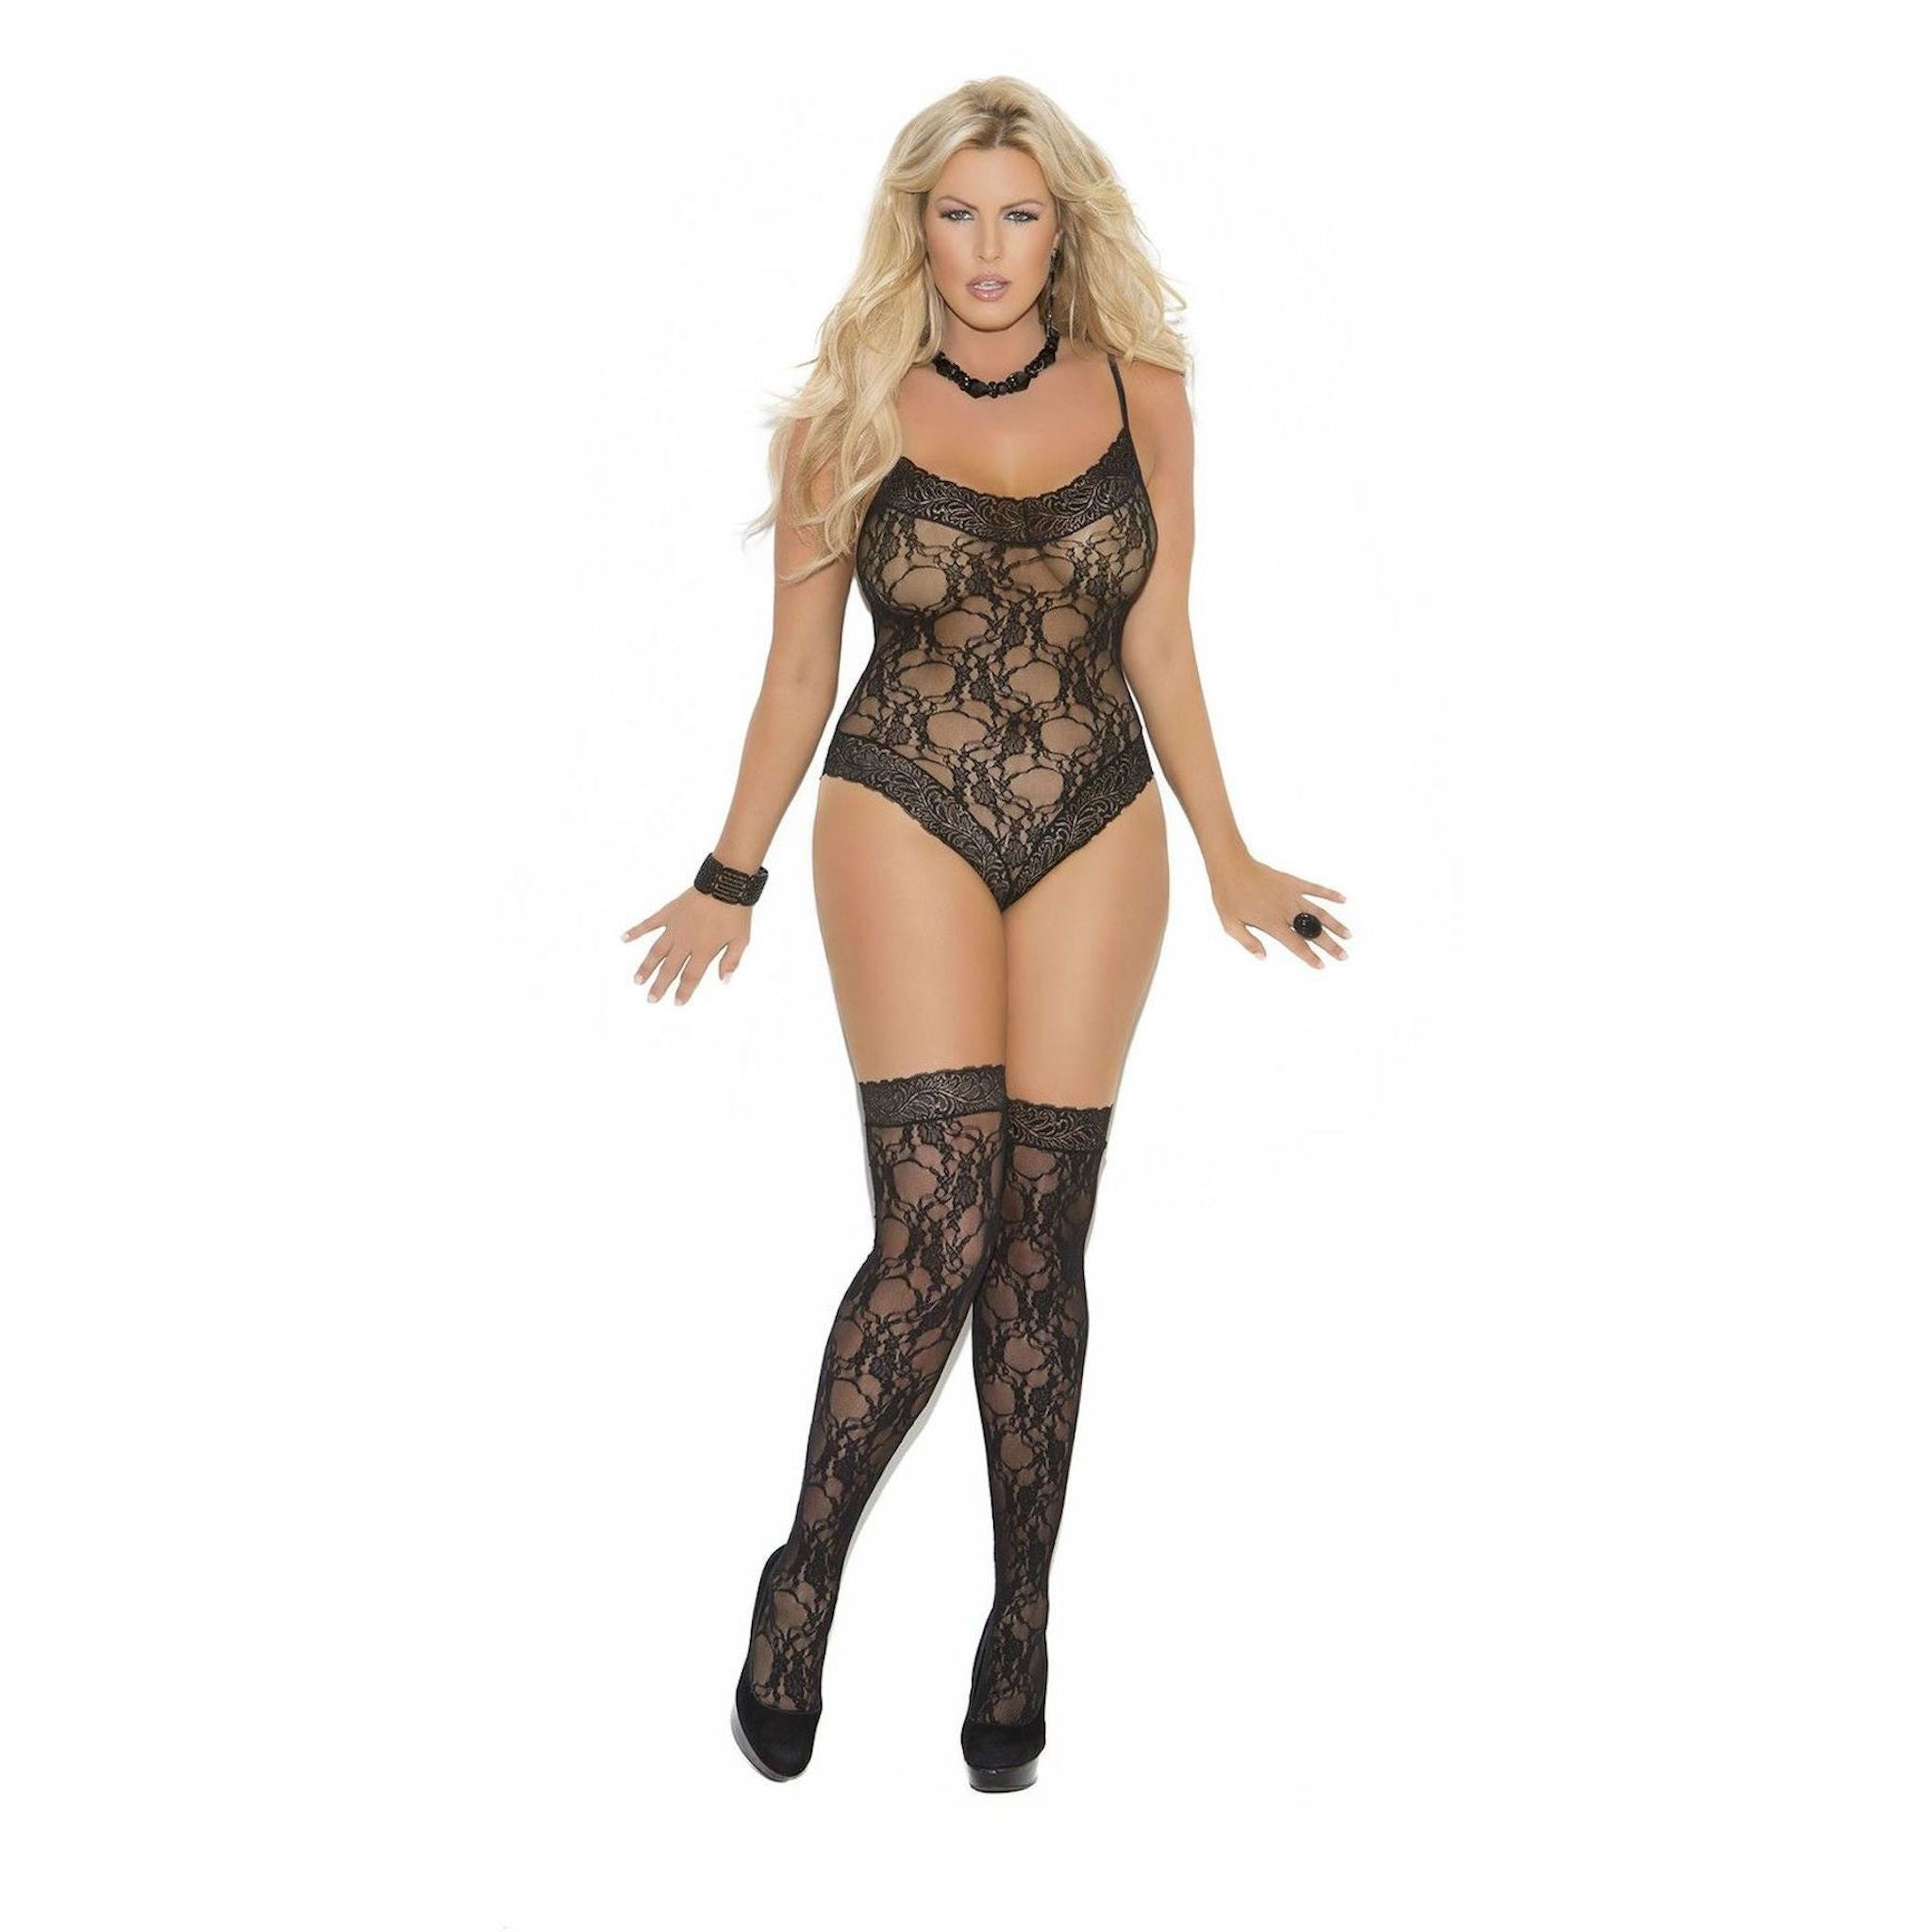 ELEGANT MOMENTS TEDDY GOLD AND BLACK LACE ADJUSTABLE GARTERS AND STRAPS  SIZE